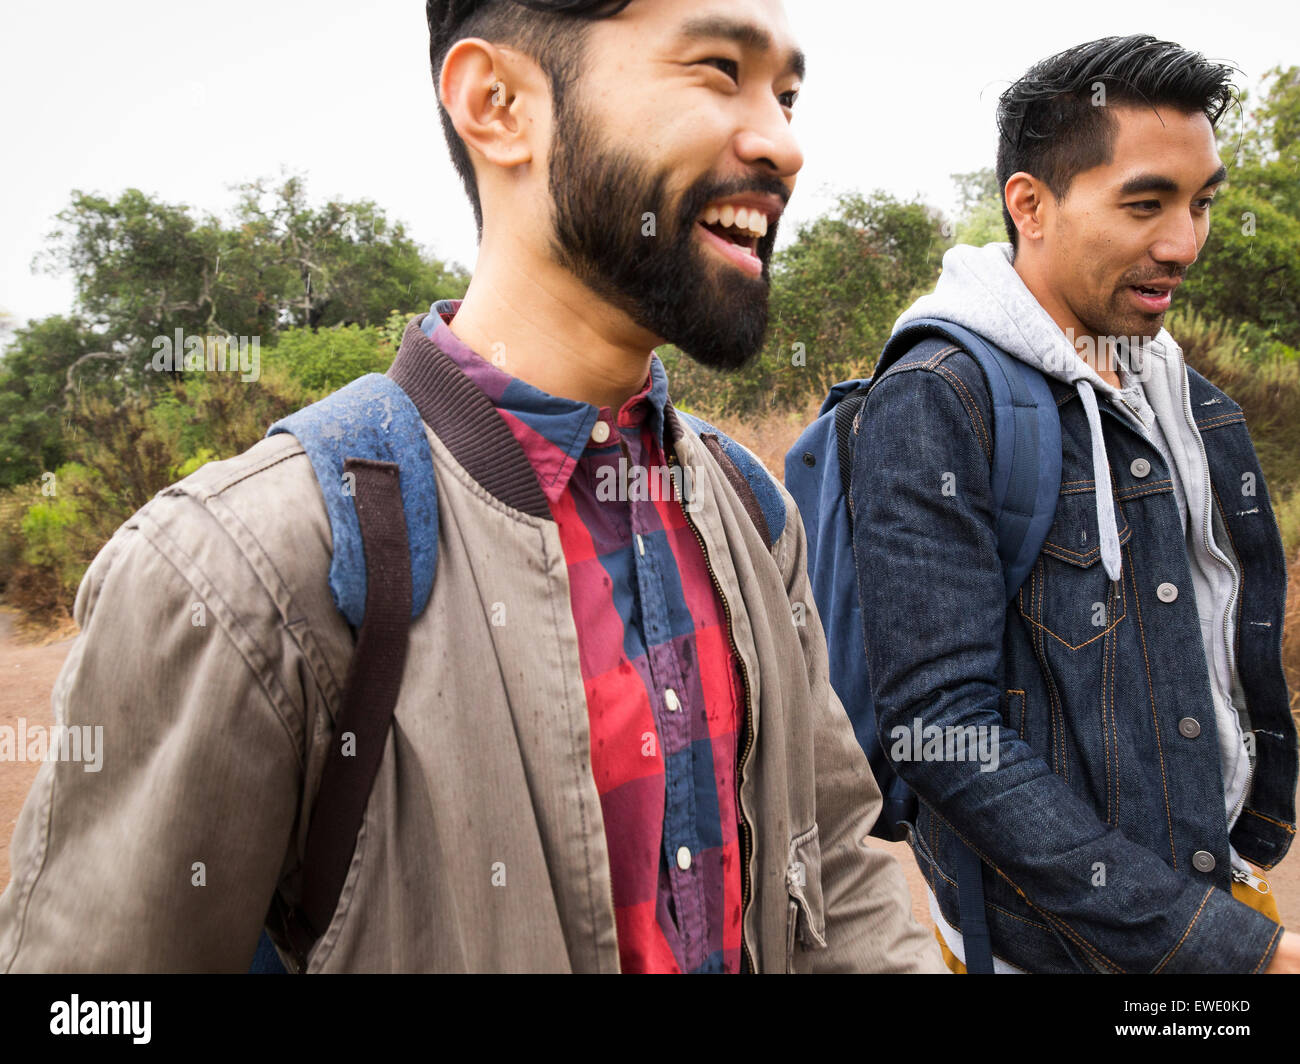 Two young men walking in a park - Stock Image